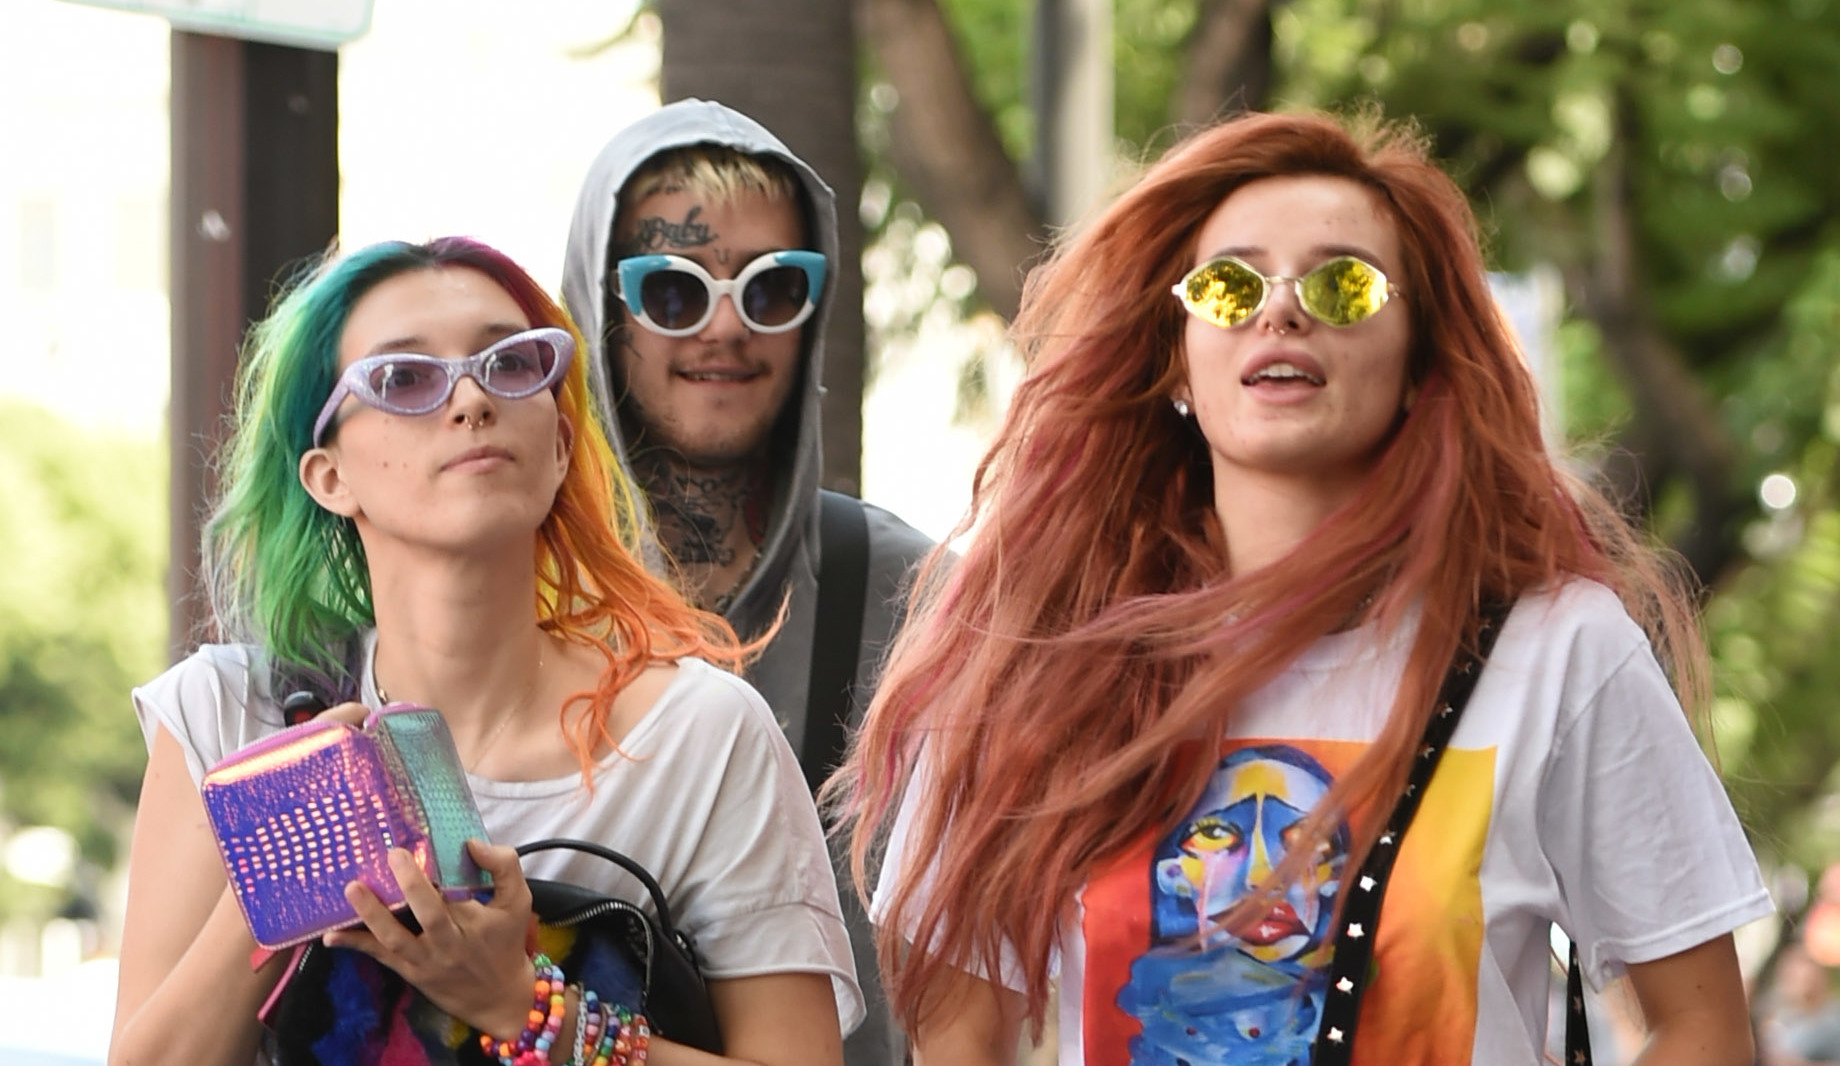 Bella Thorne meets Lil Peep to do some shopping in Hollywood  Featuring: Bella Thorne, Dani Thorne, Lil Peep Where: Los Angeles, California, United States When: 14 Sep 2017 Credit: WENN.com